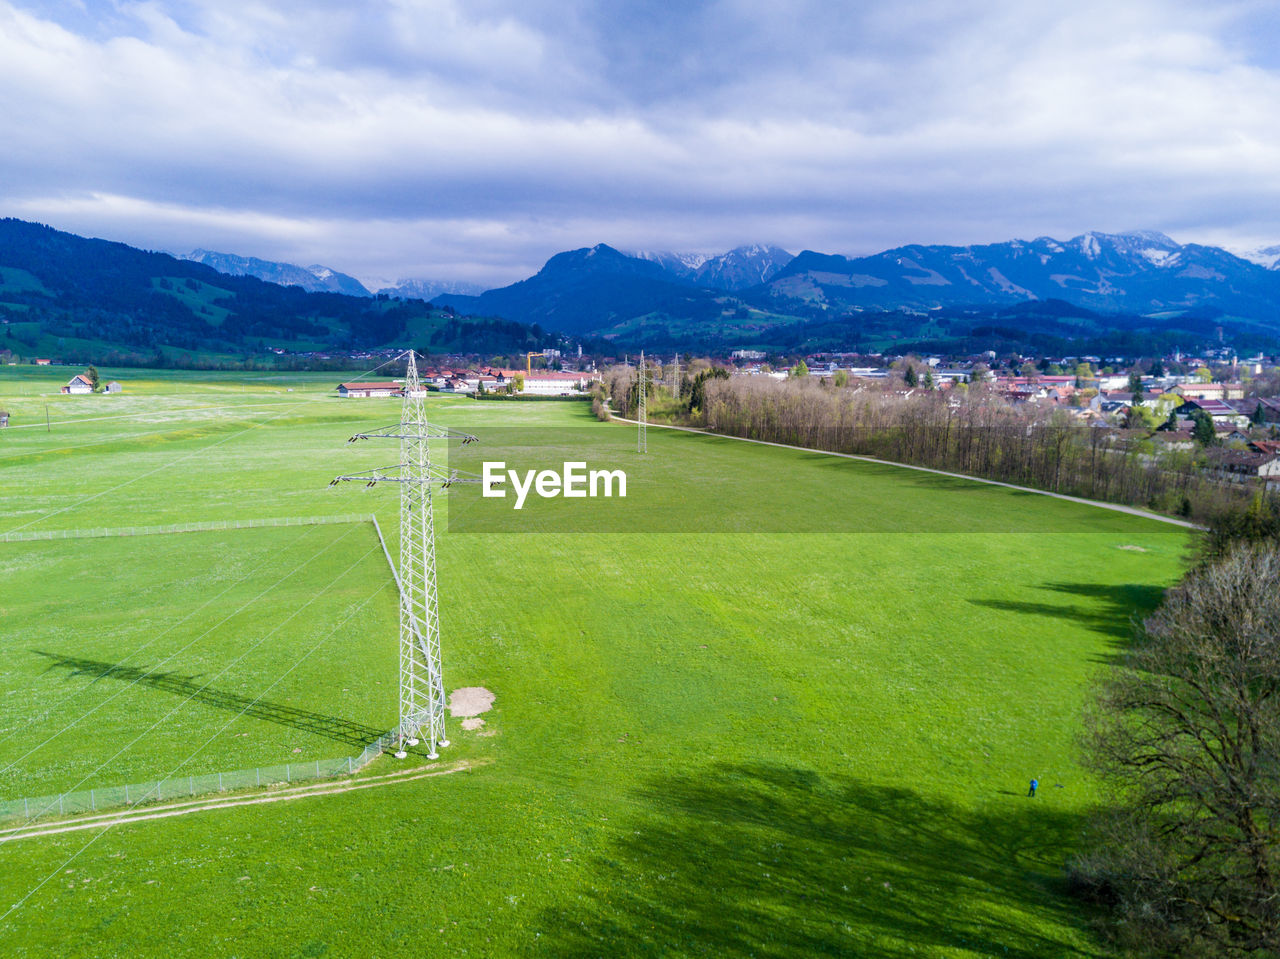 grass, field, sky, mountain, green color, nature, scenics, beauty in nature, cloud - sky, landscape, tranquil scene, tranquility, mountain range, outdoors, day, no people, sport, growth, playing field, agriculture, soccer field, rural scene, tree, goal post